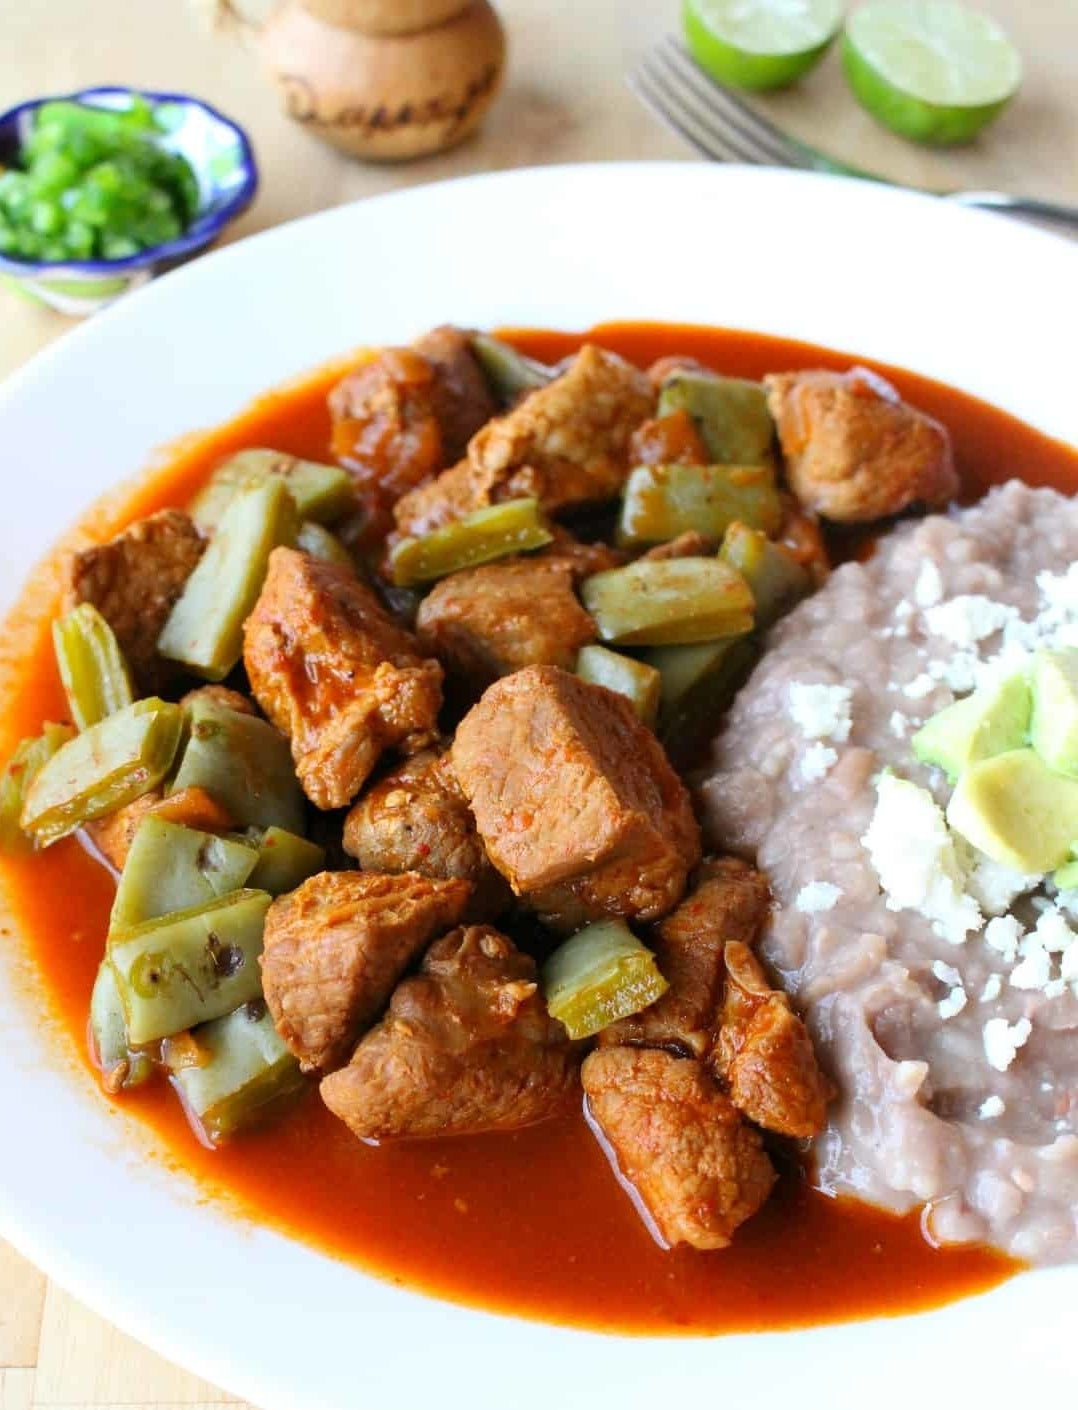 Pork chile with cactus and refried beans.